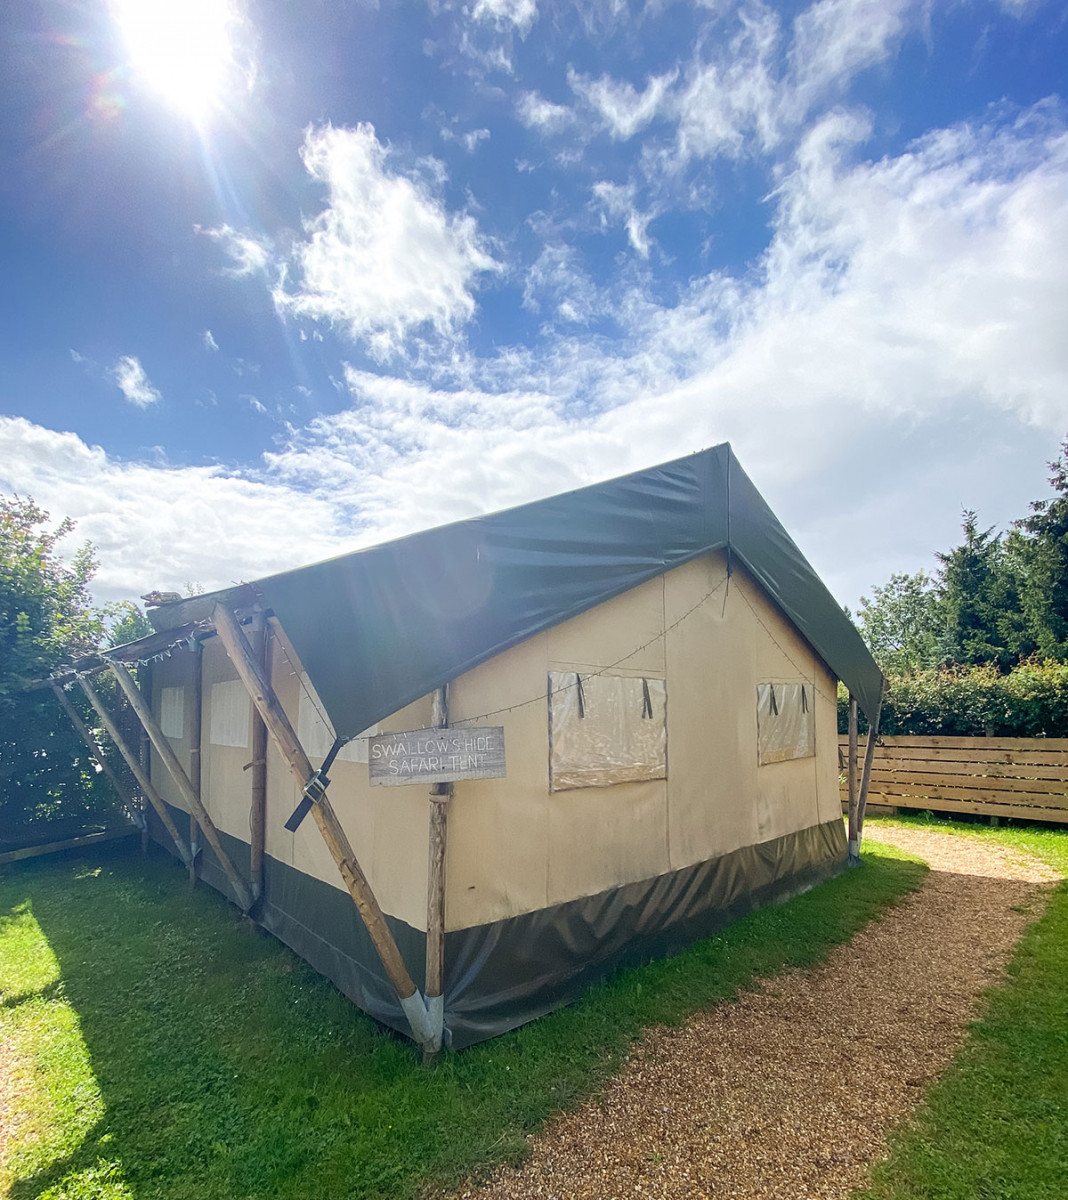 Swallows Hide Safari Tent at Sumners Ponds Lakes and Capsite in West Sussex